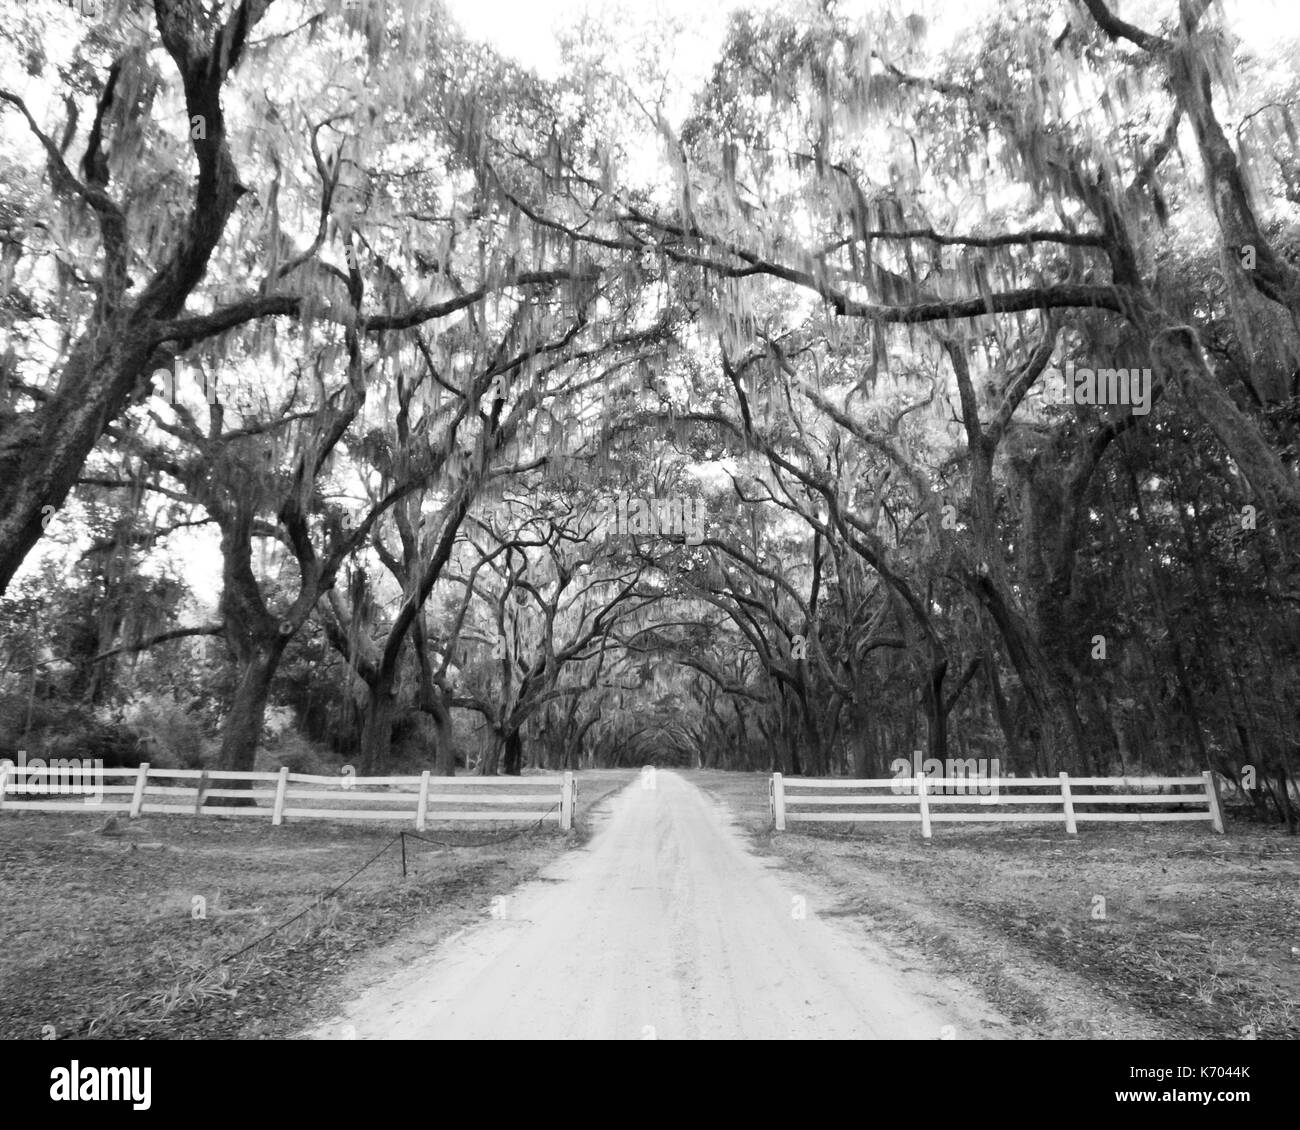 a black and white painted effect image of famous weepy willow trees in Savannah, Georgia at the Wormsloe historic site - Stock Image